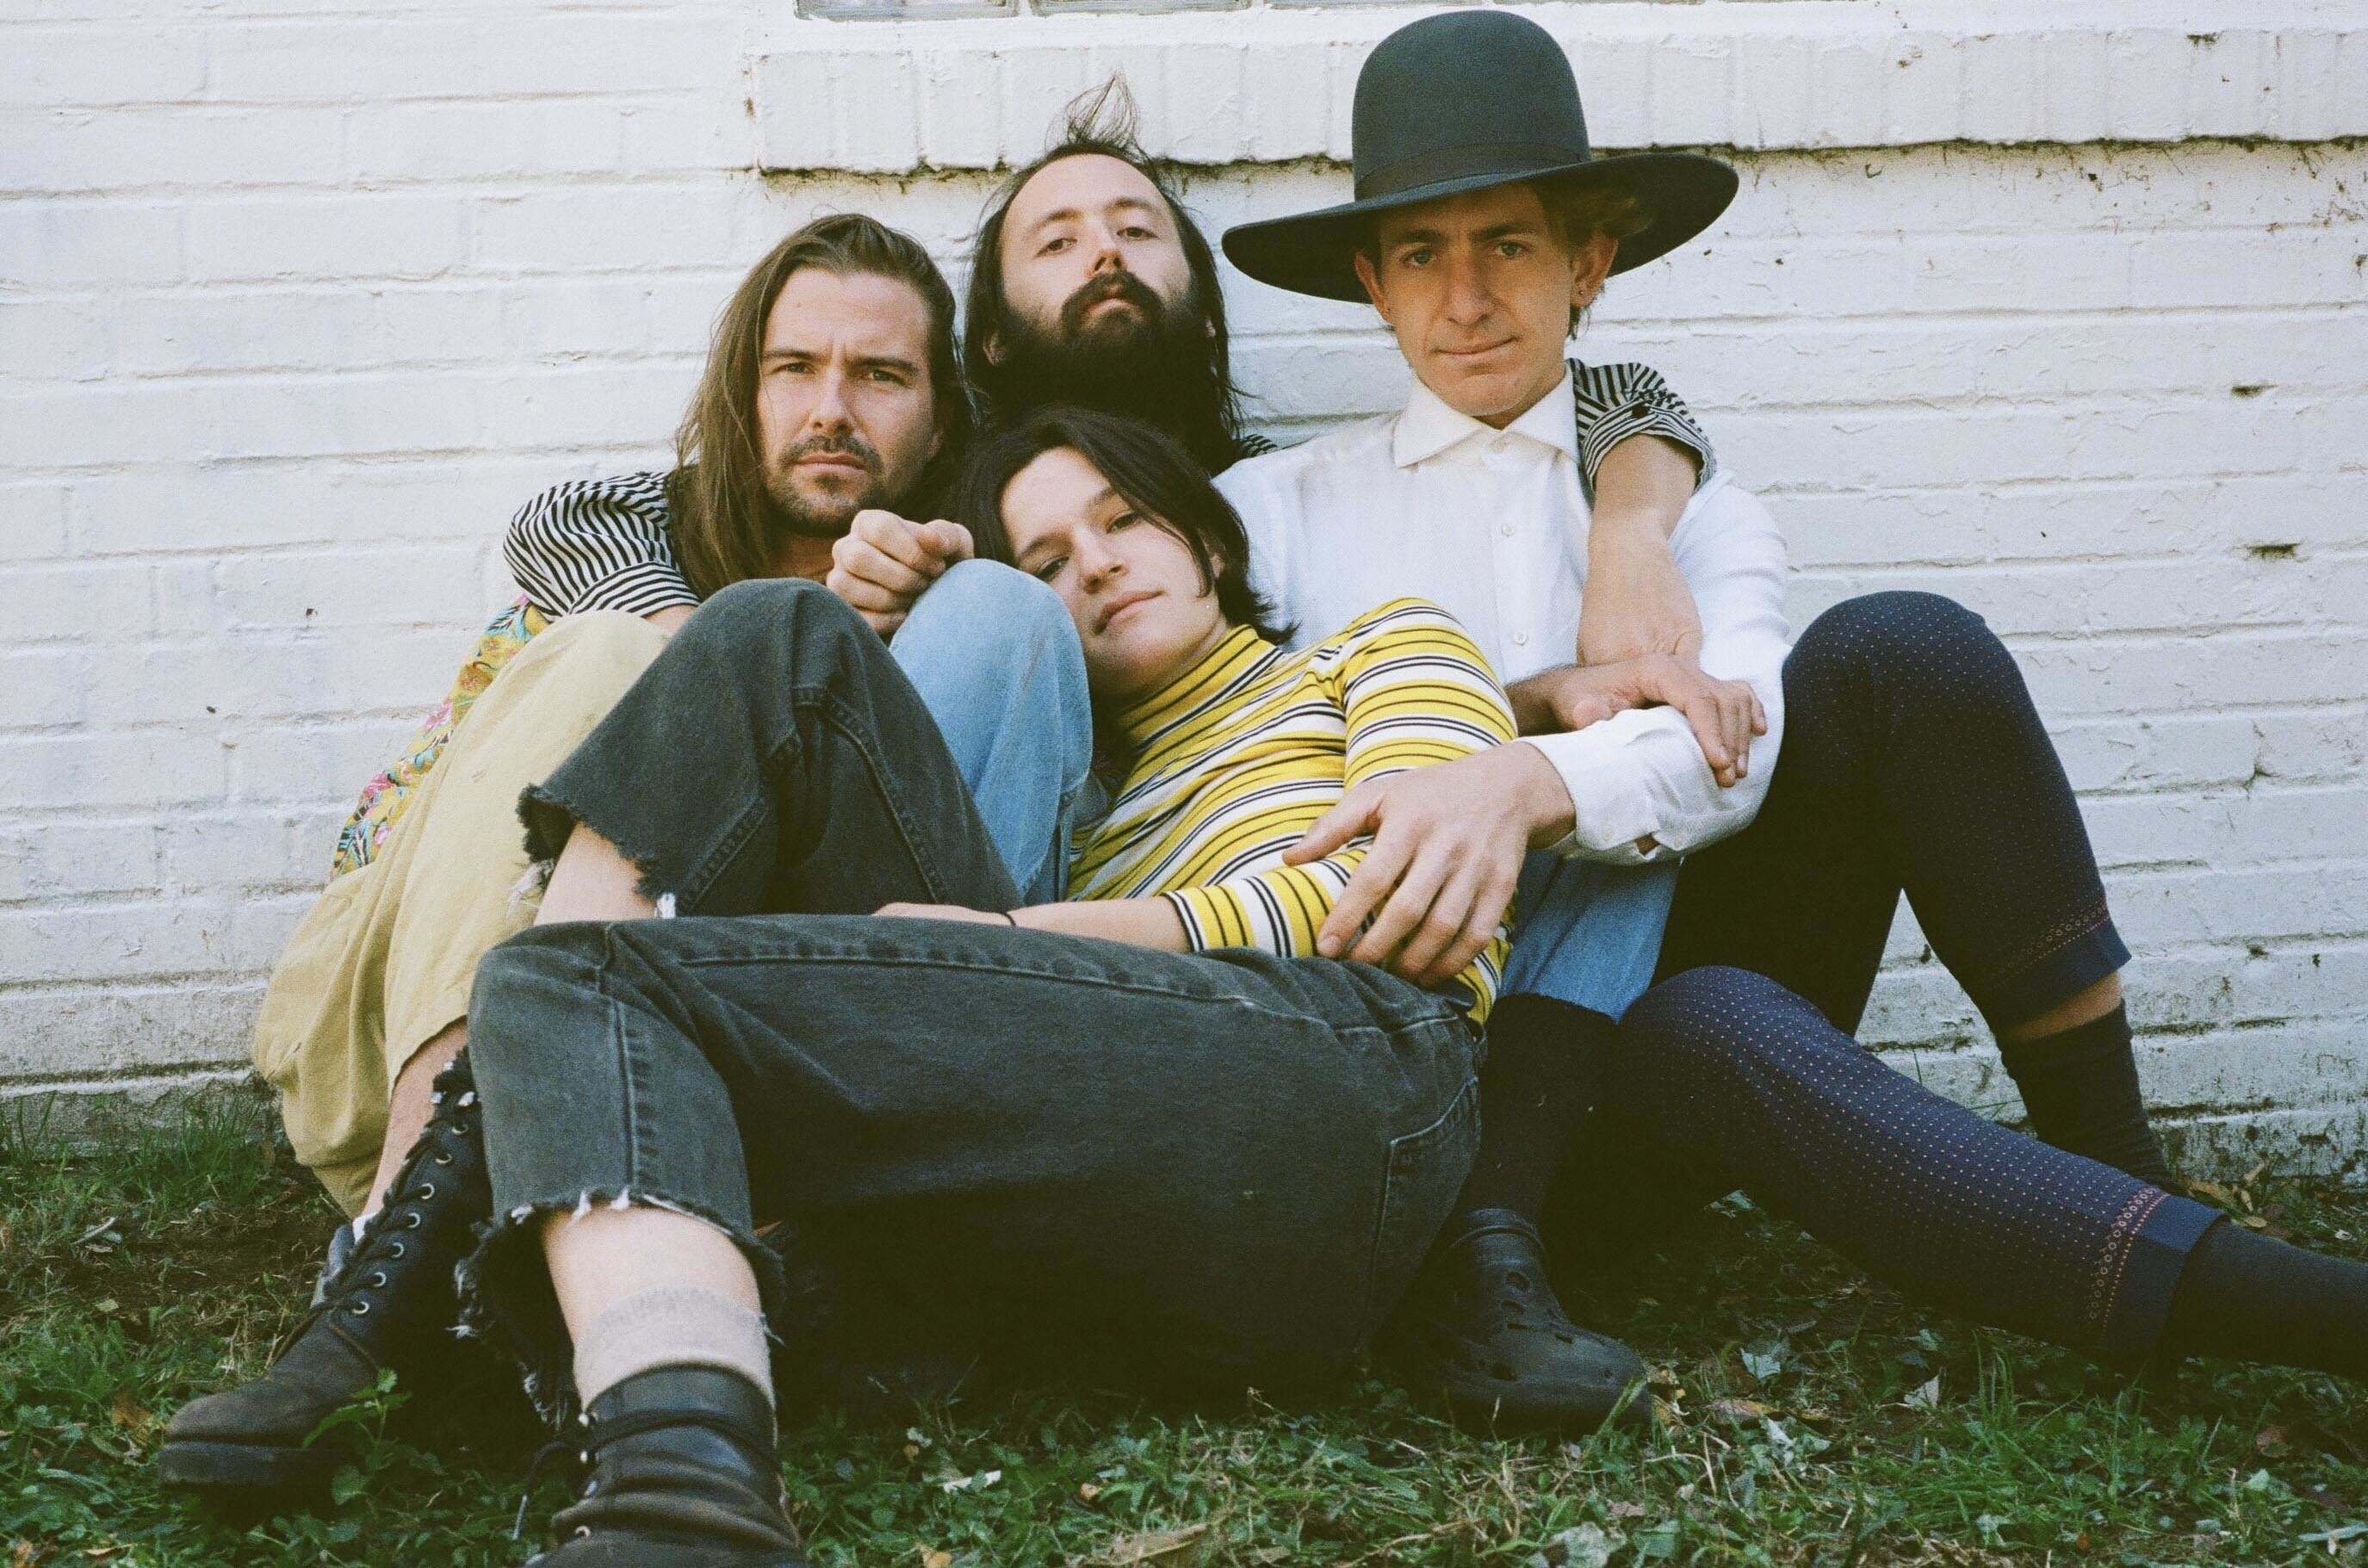 Big Thief to release new album 'U.F.O.F.' this May